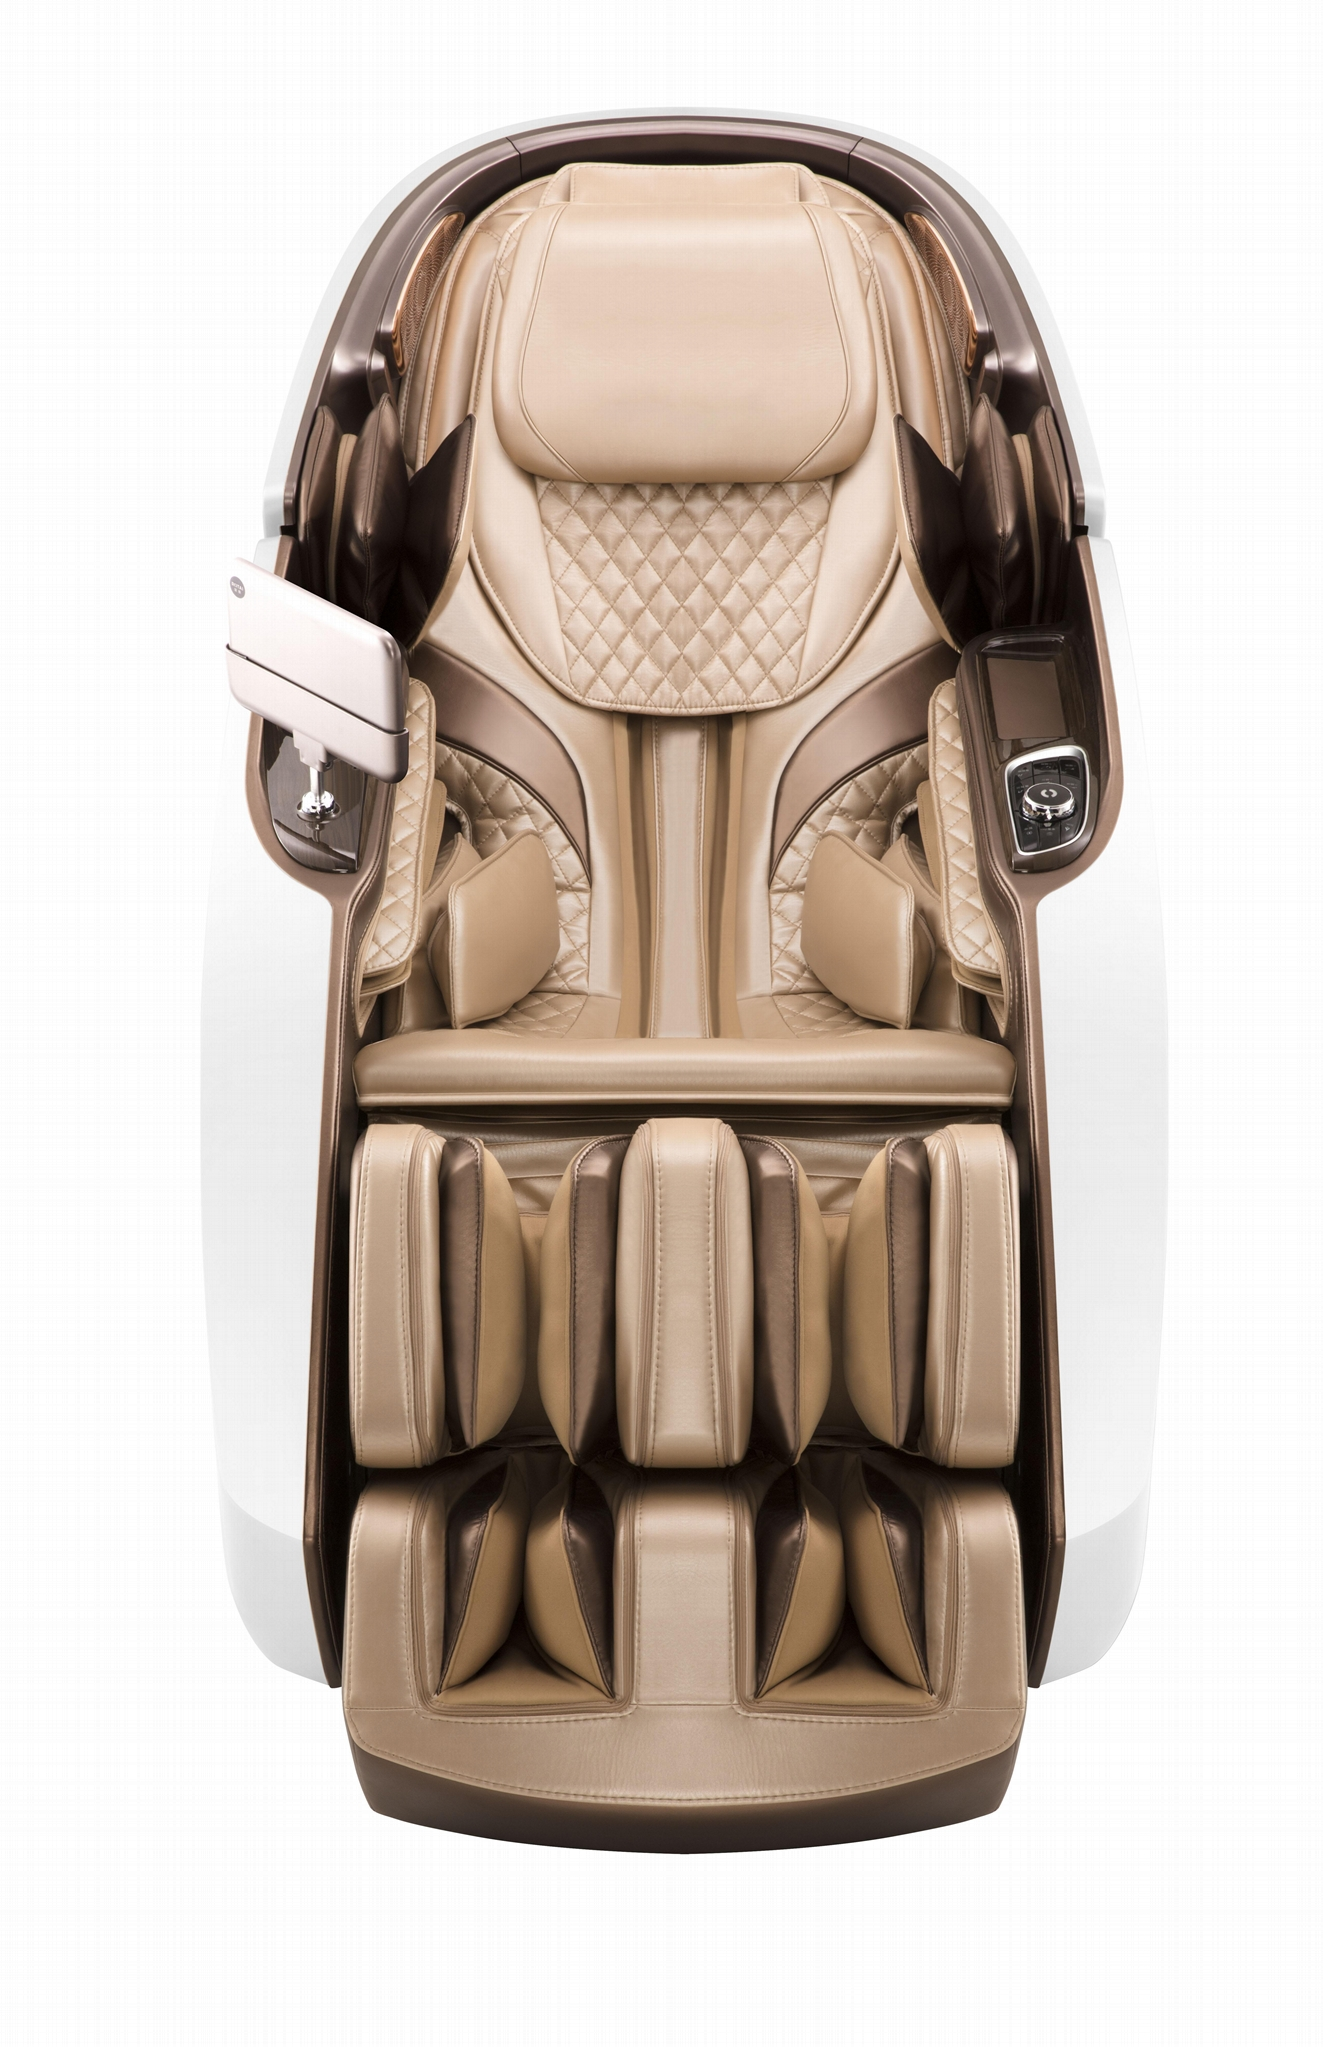 Super Deluxe 4D Zero Gravity Recliner Foot Massage Chair 6